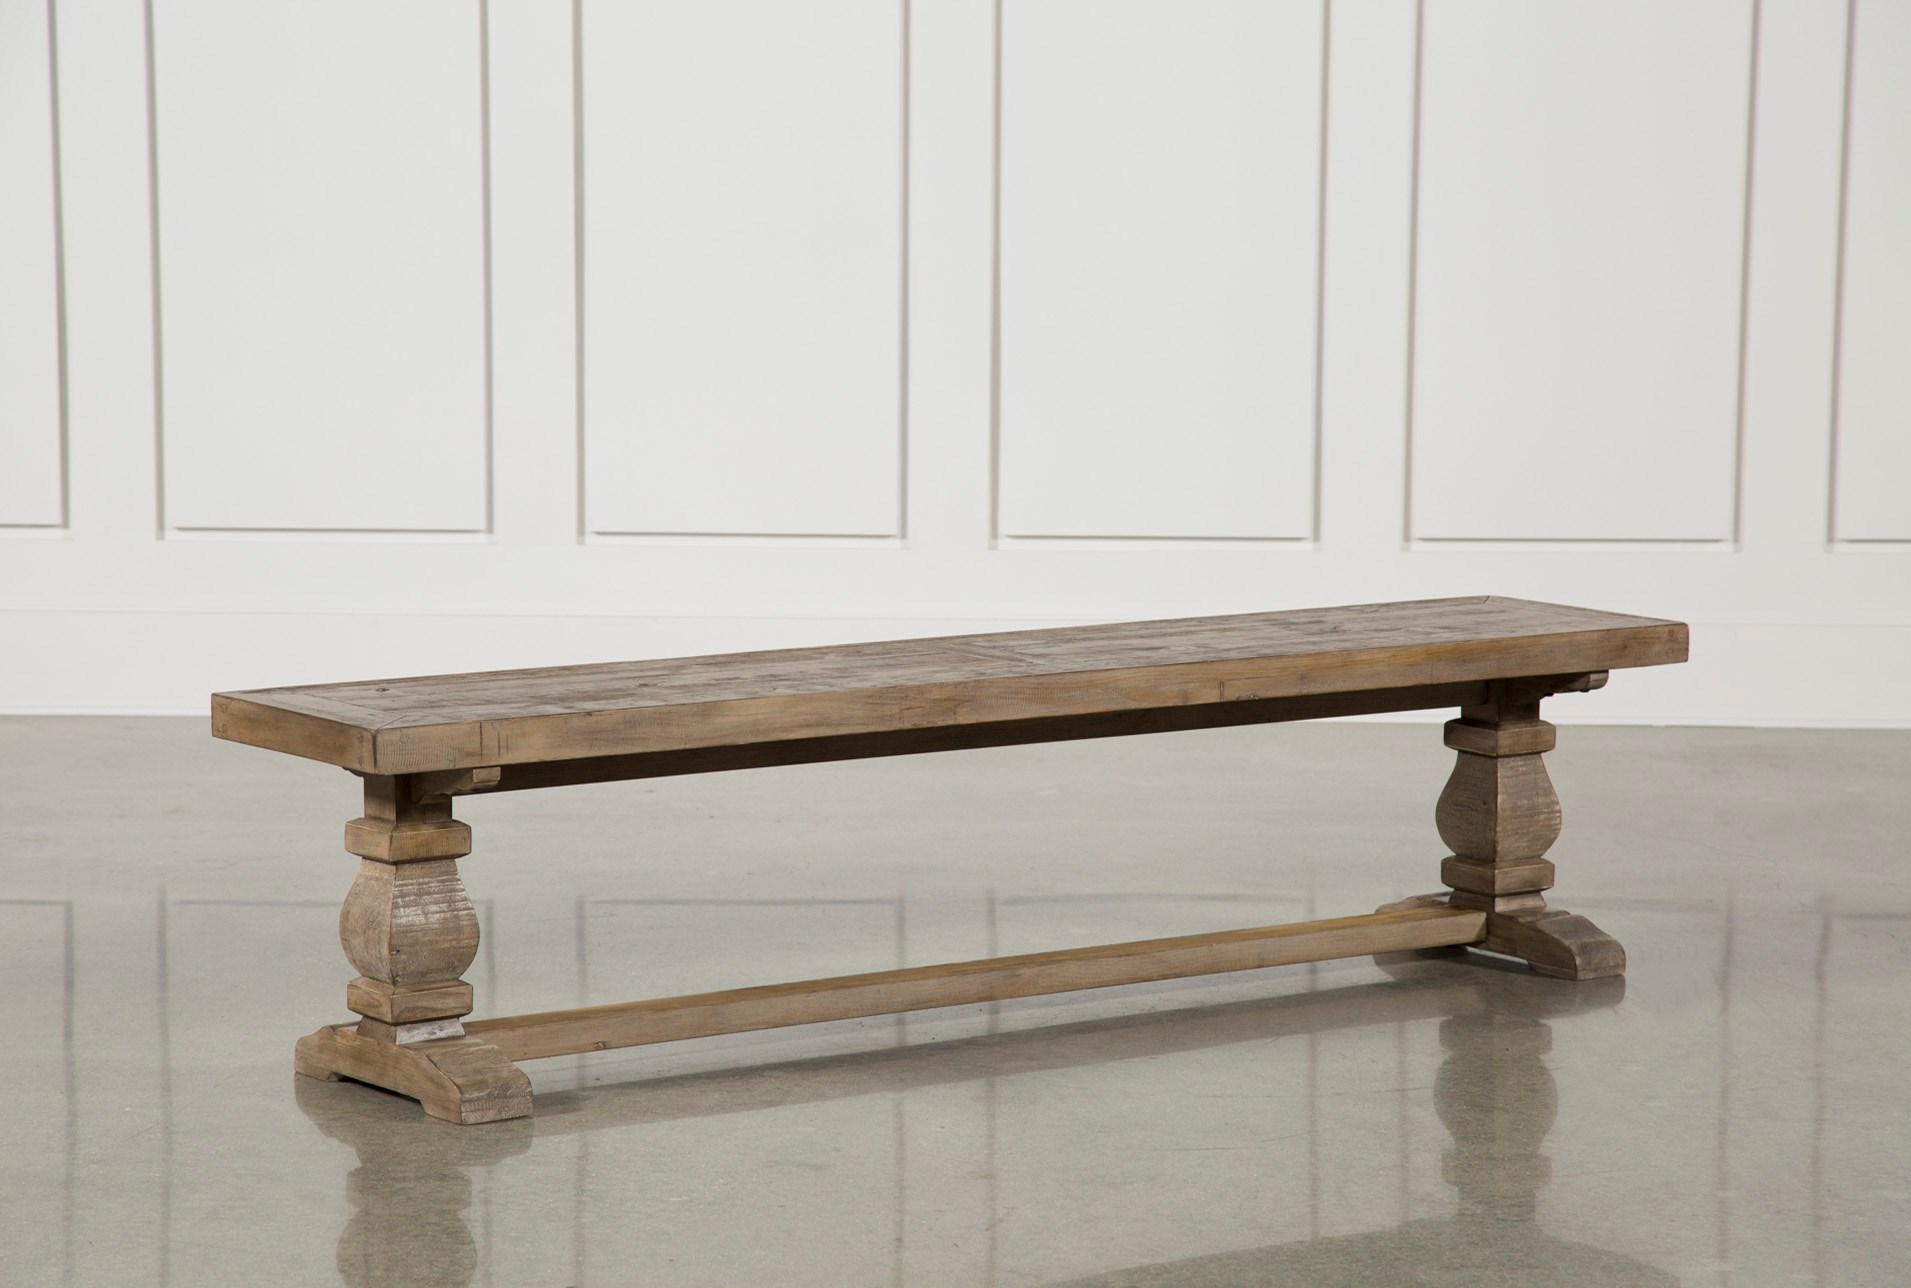 Dining Benches - Great Selection of Styles | Living Spaces